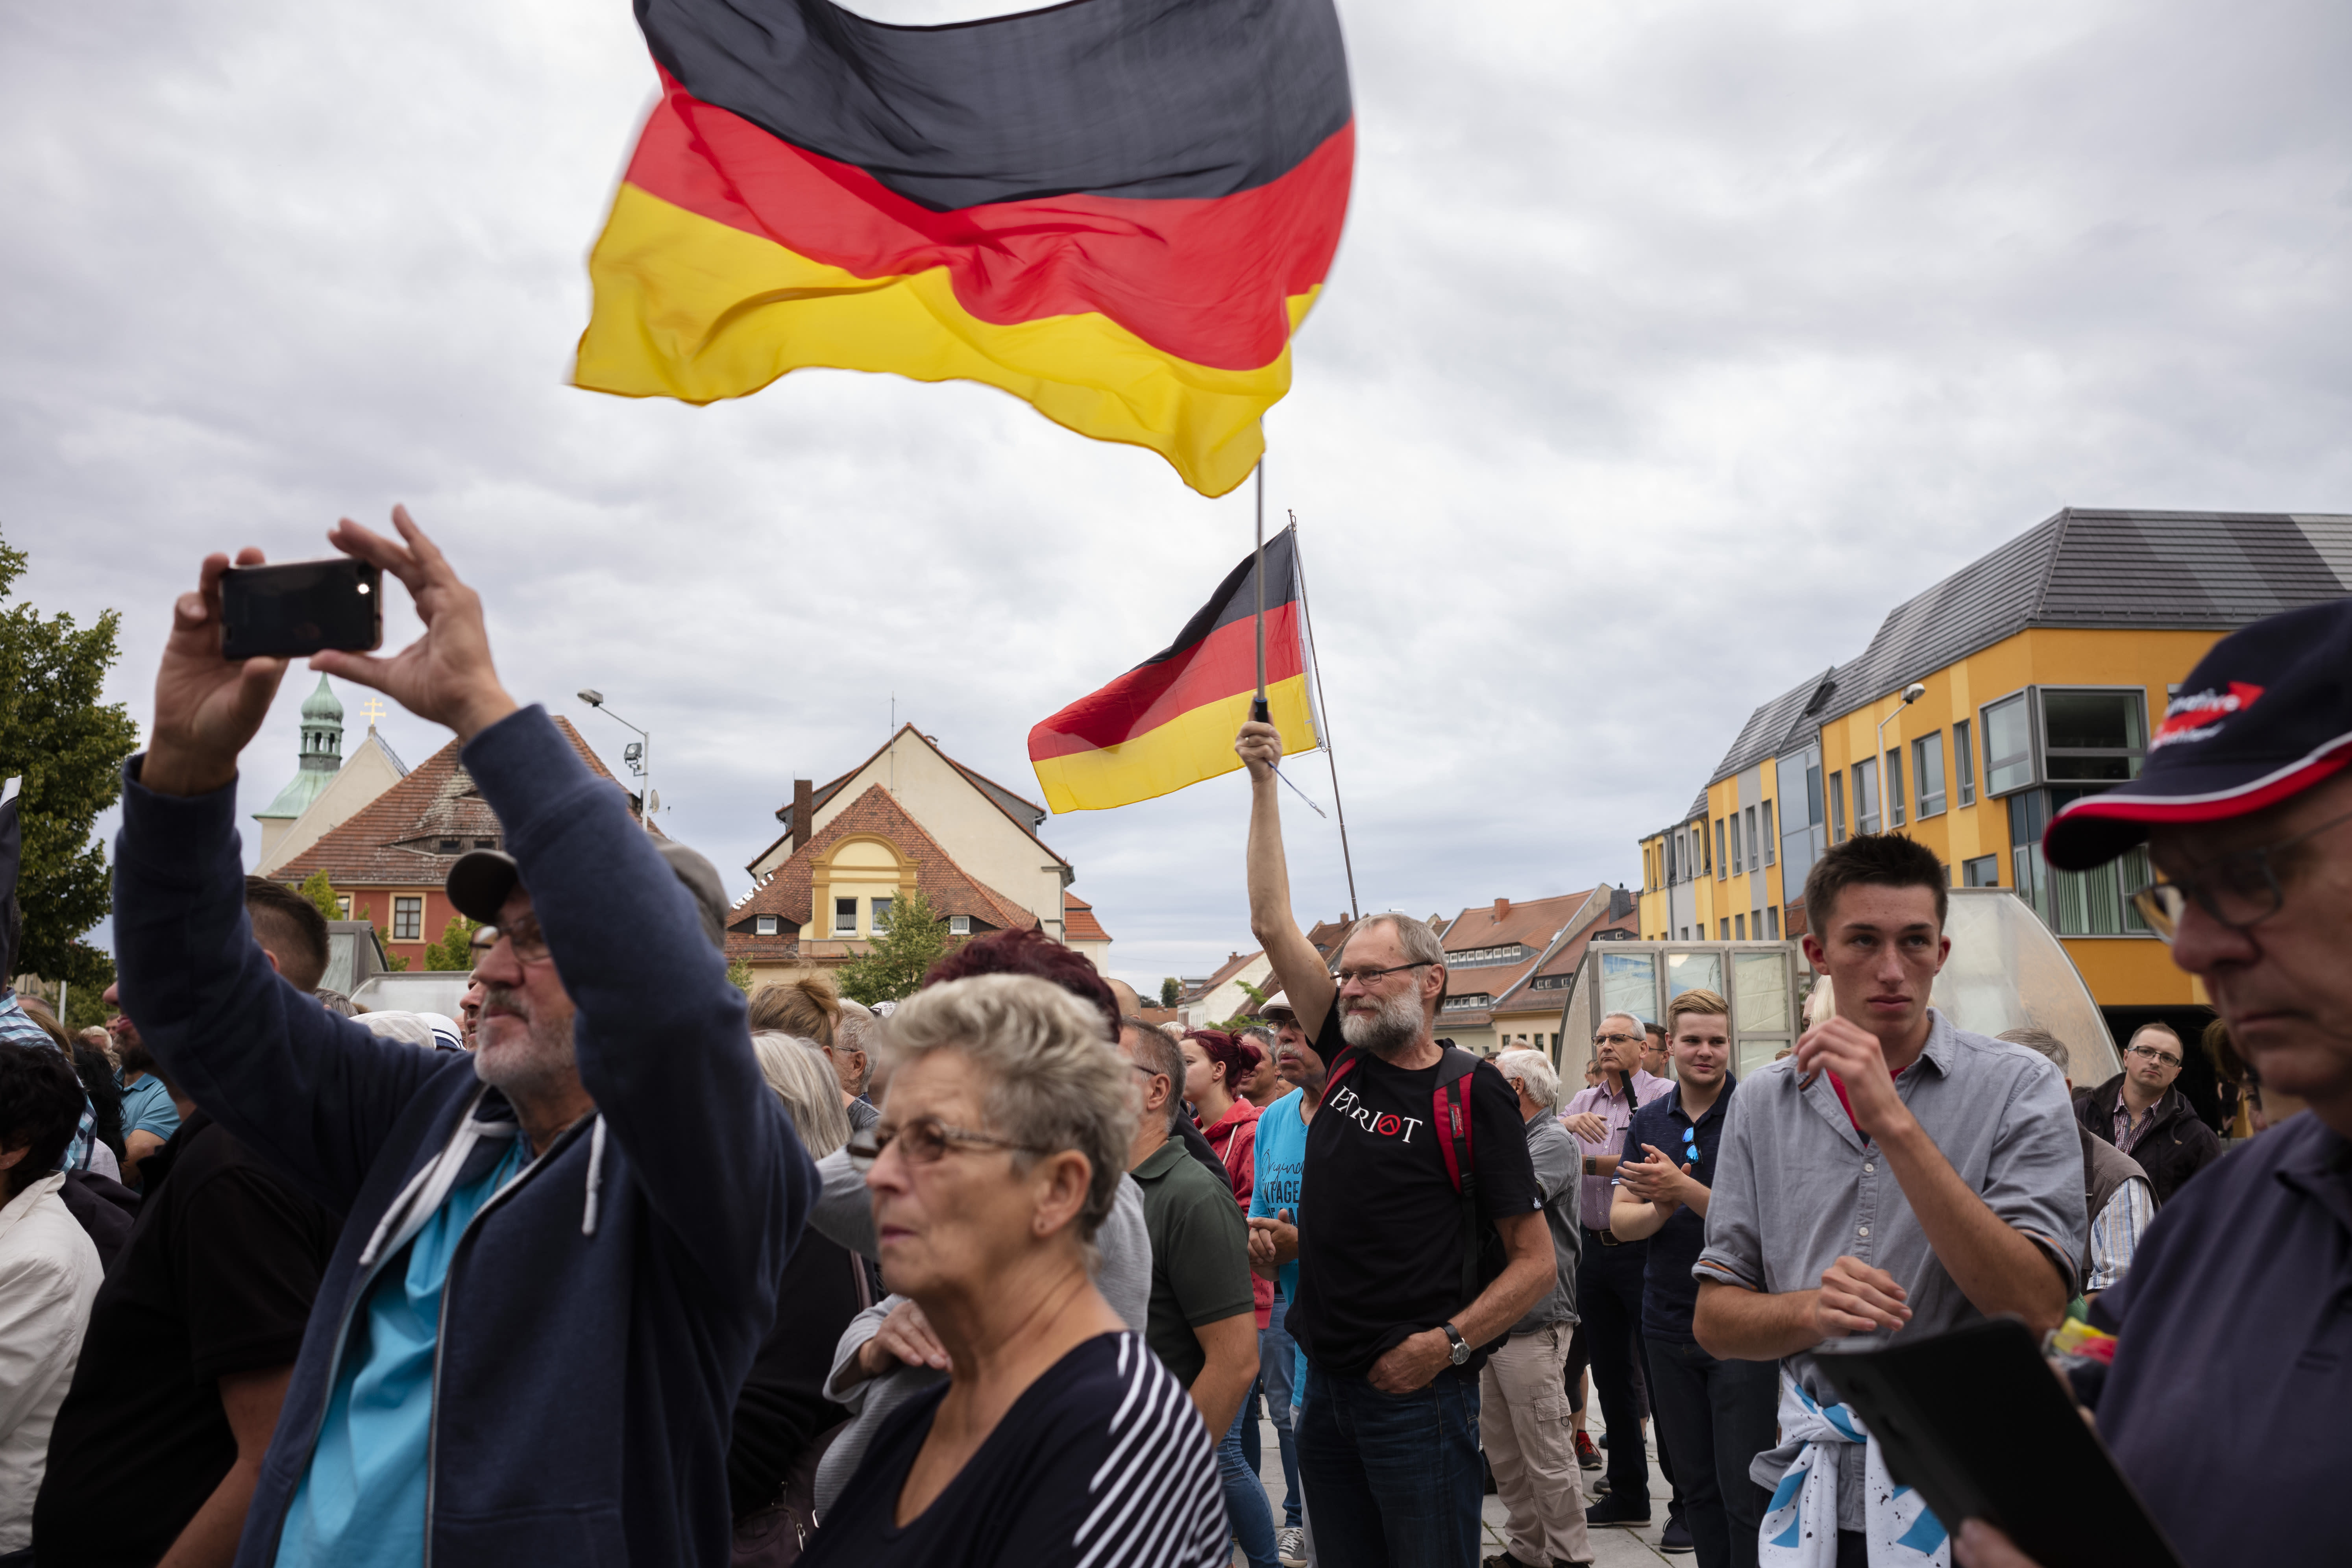 Germany regional elections: Far-right surge in two states